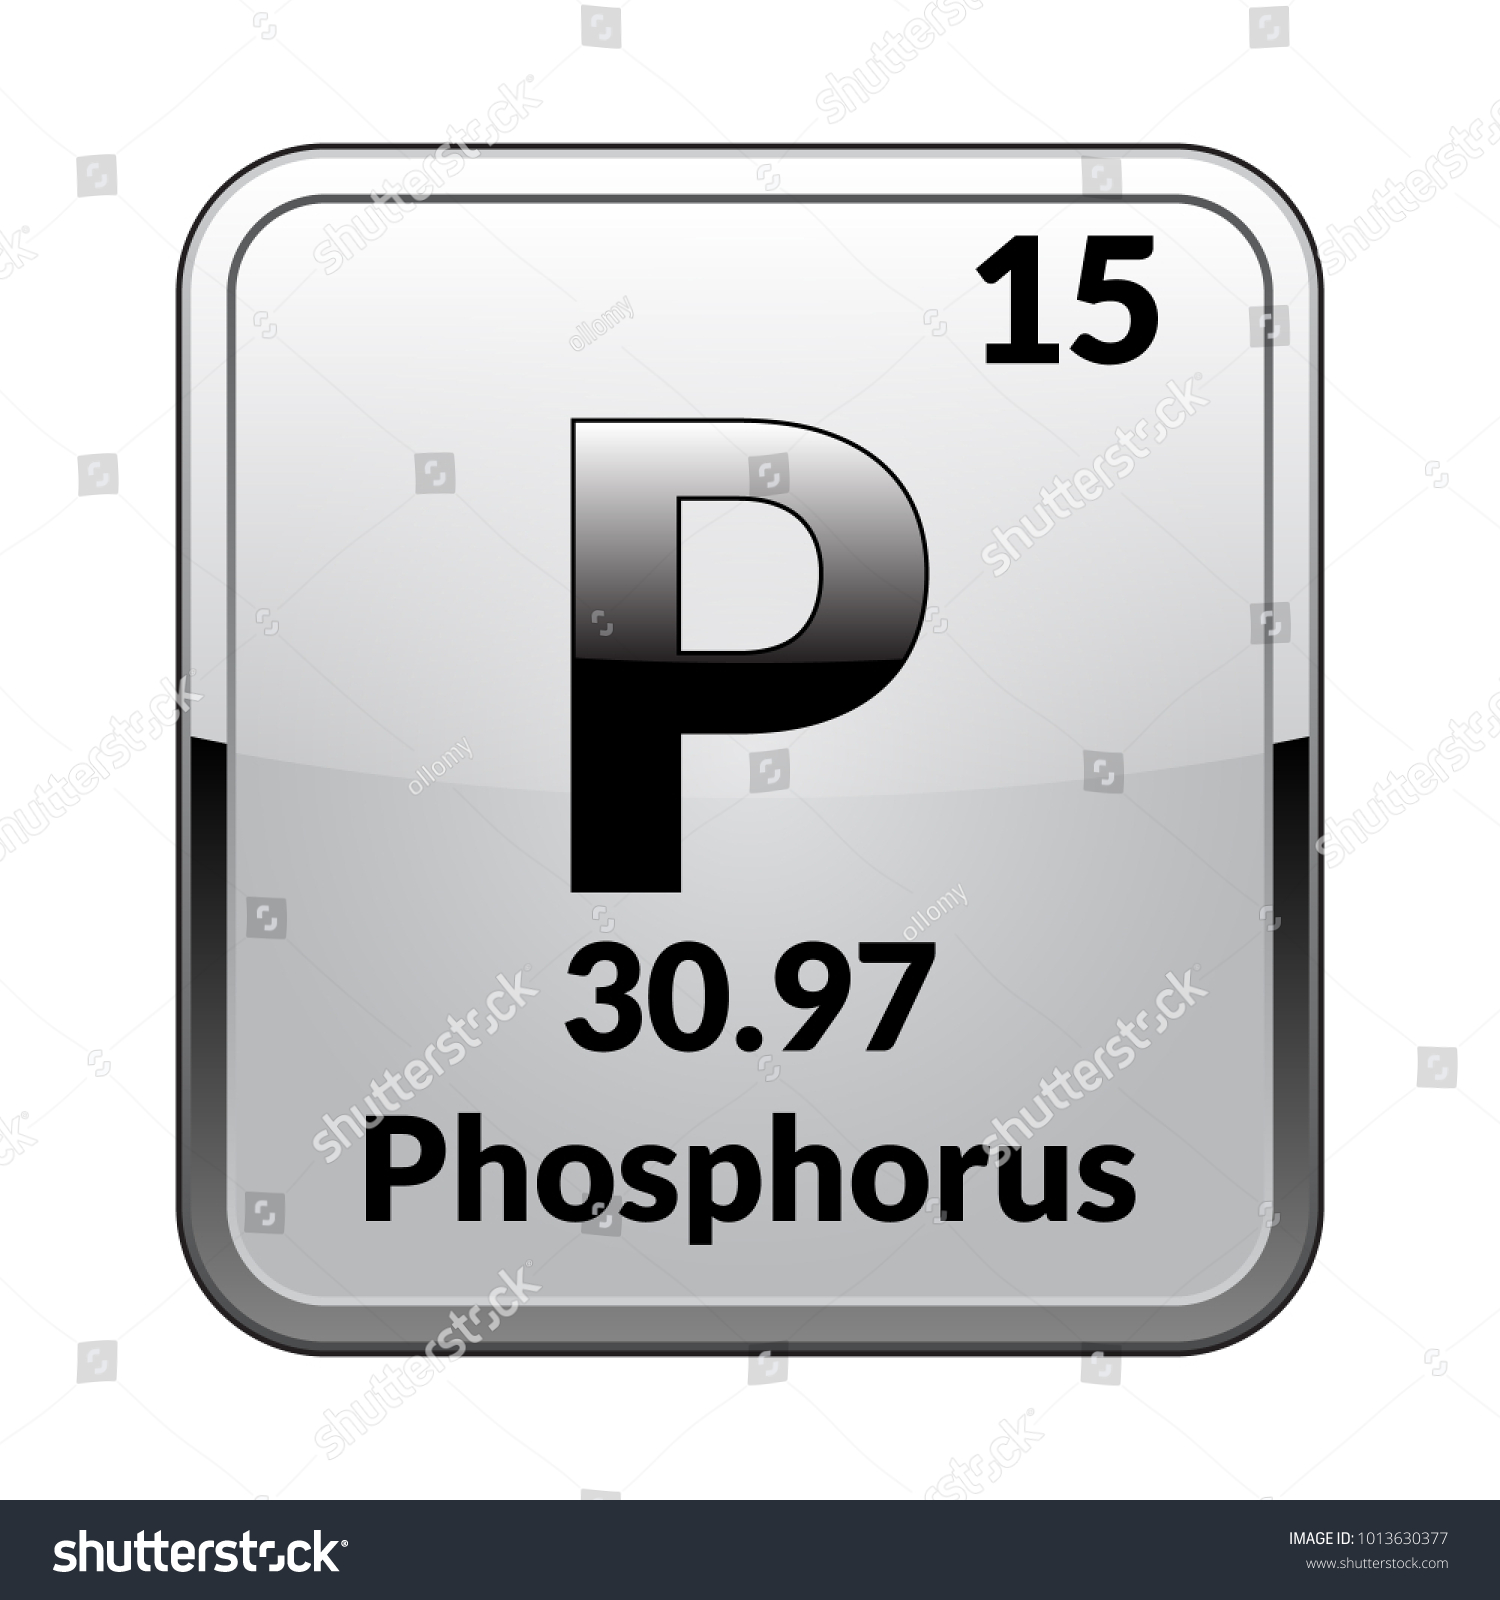 Phosphorus Symbolchemical Element Periodic Table On Stock Vector